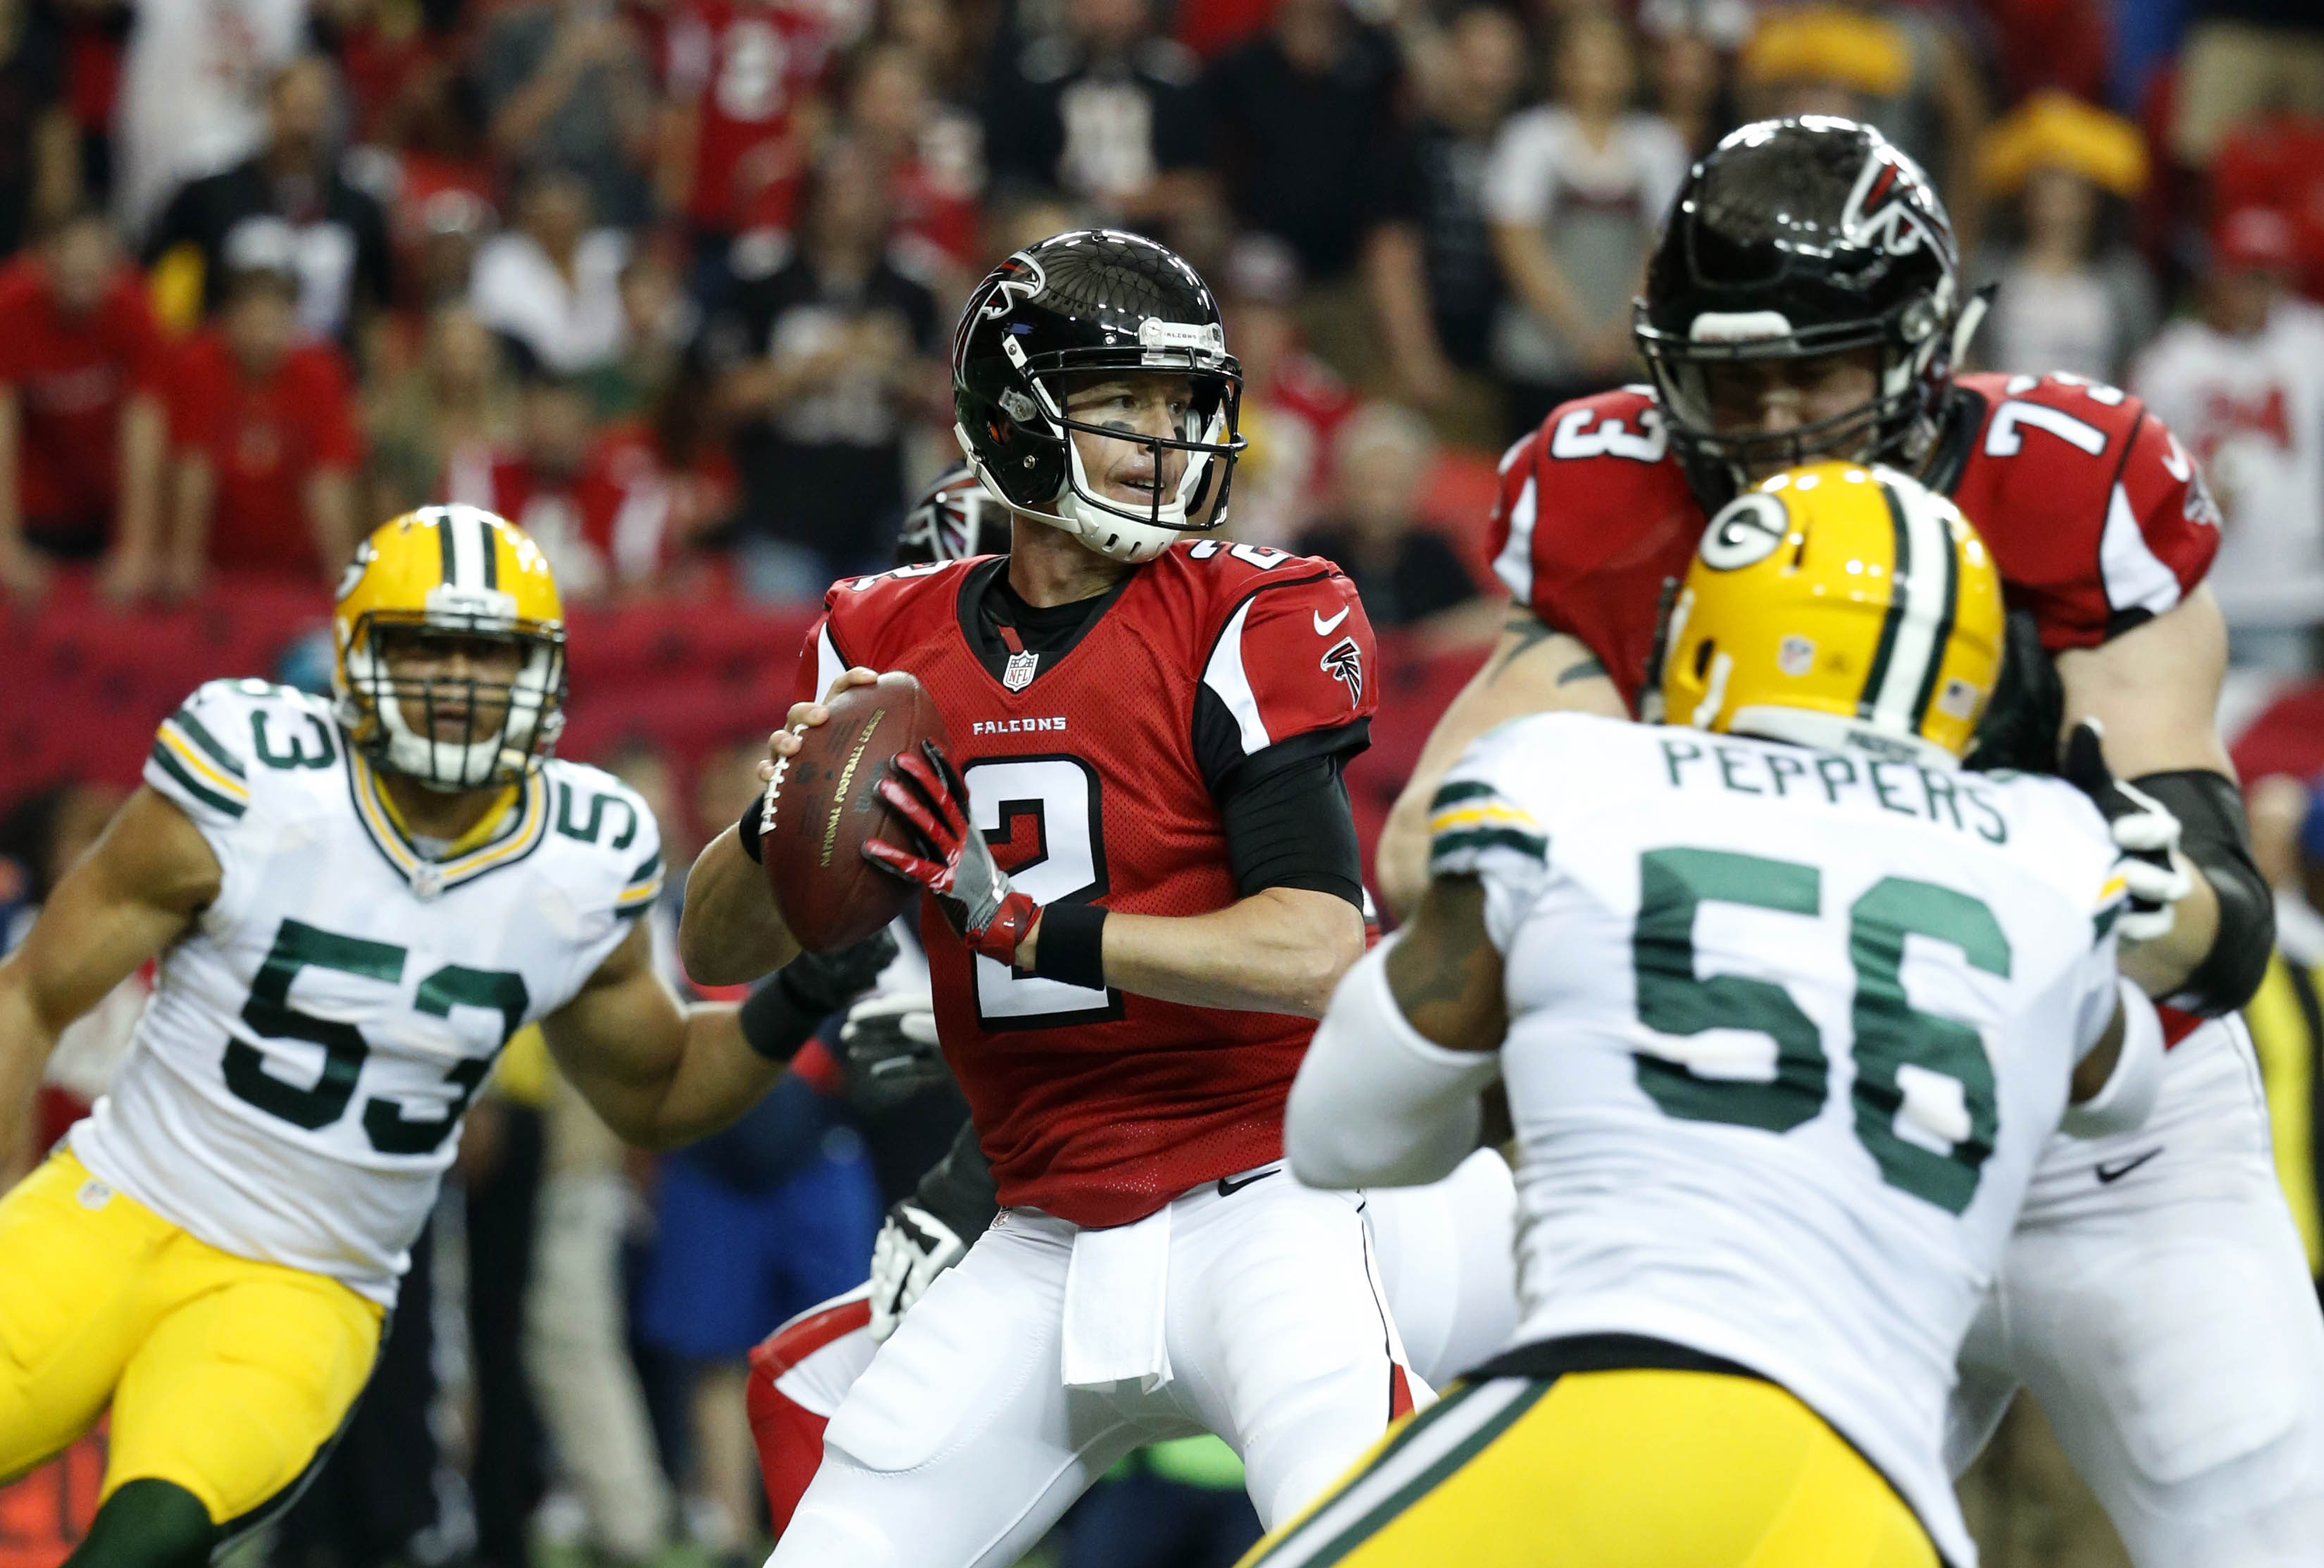 9643543-nfl-green-bay-packers-at-atlanta-falcons-2